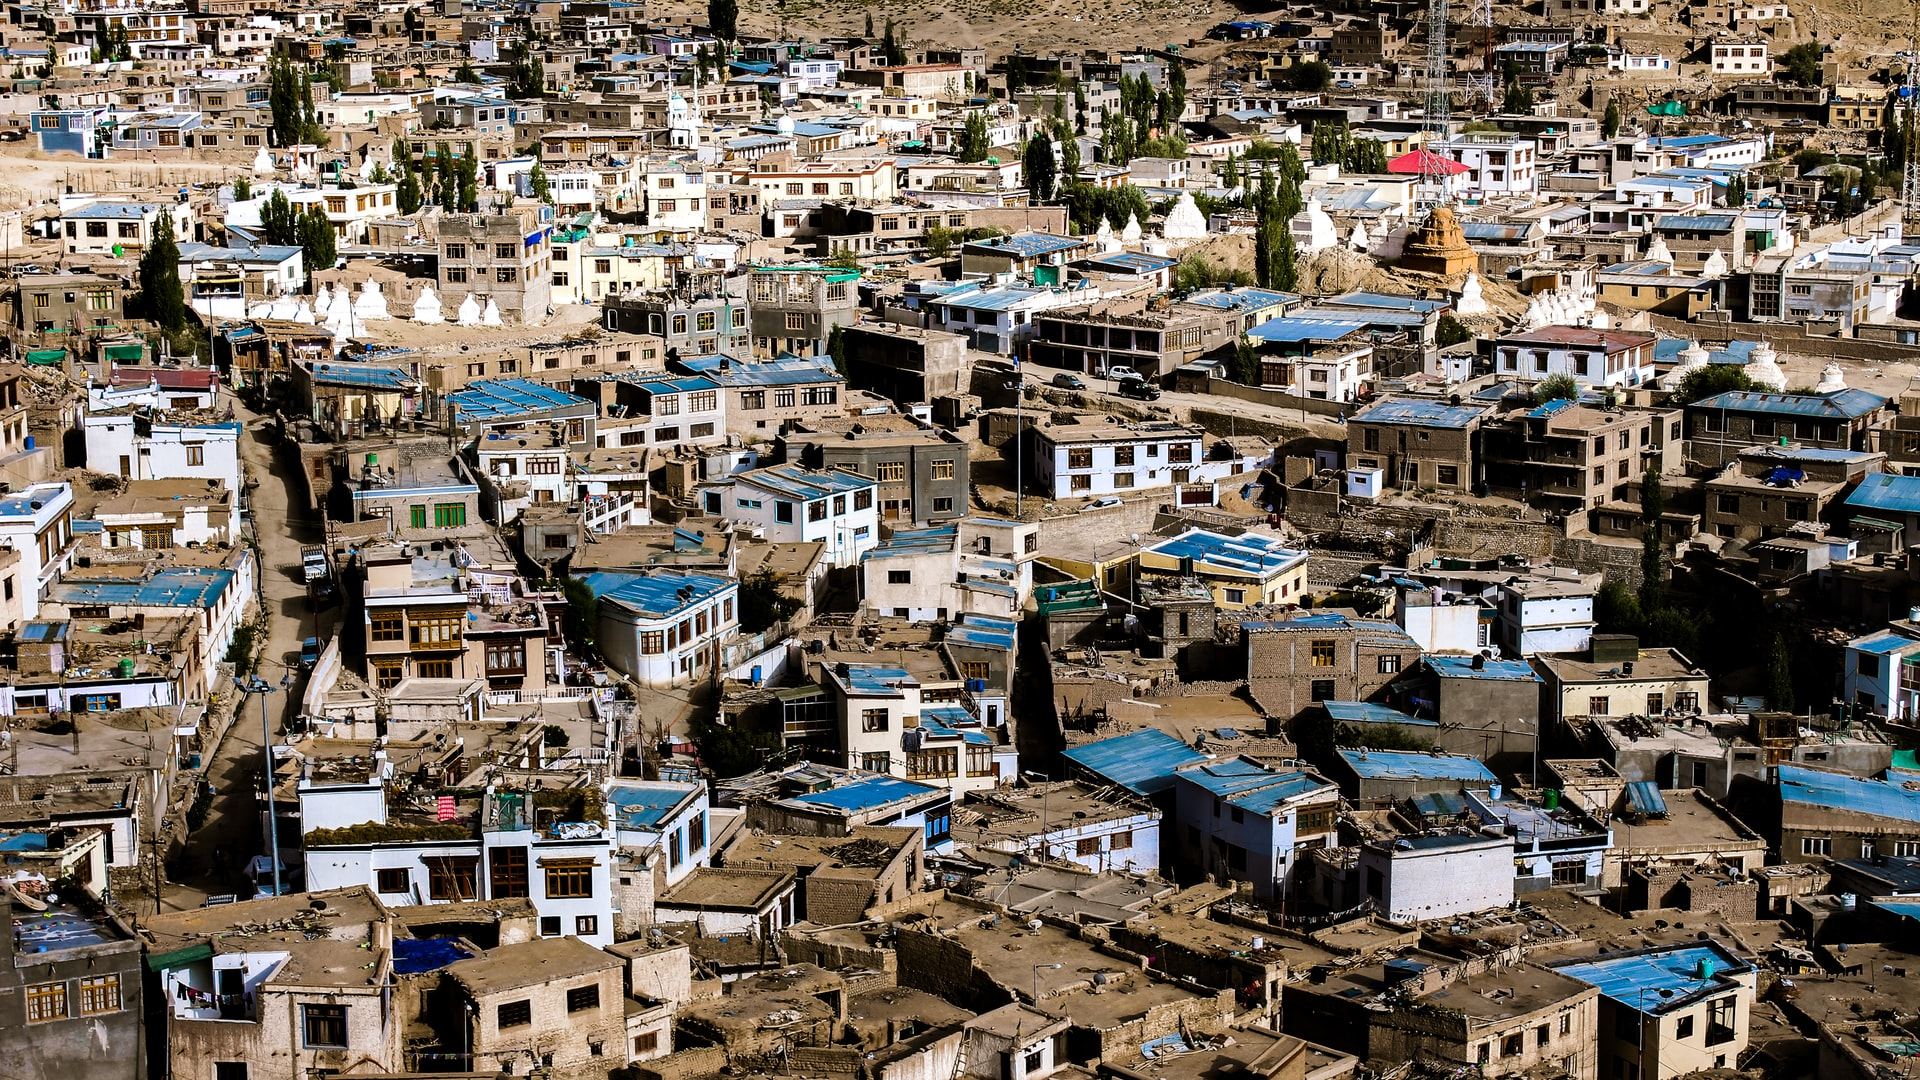 The Story of Eletricity in Ladakh